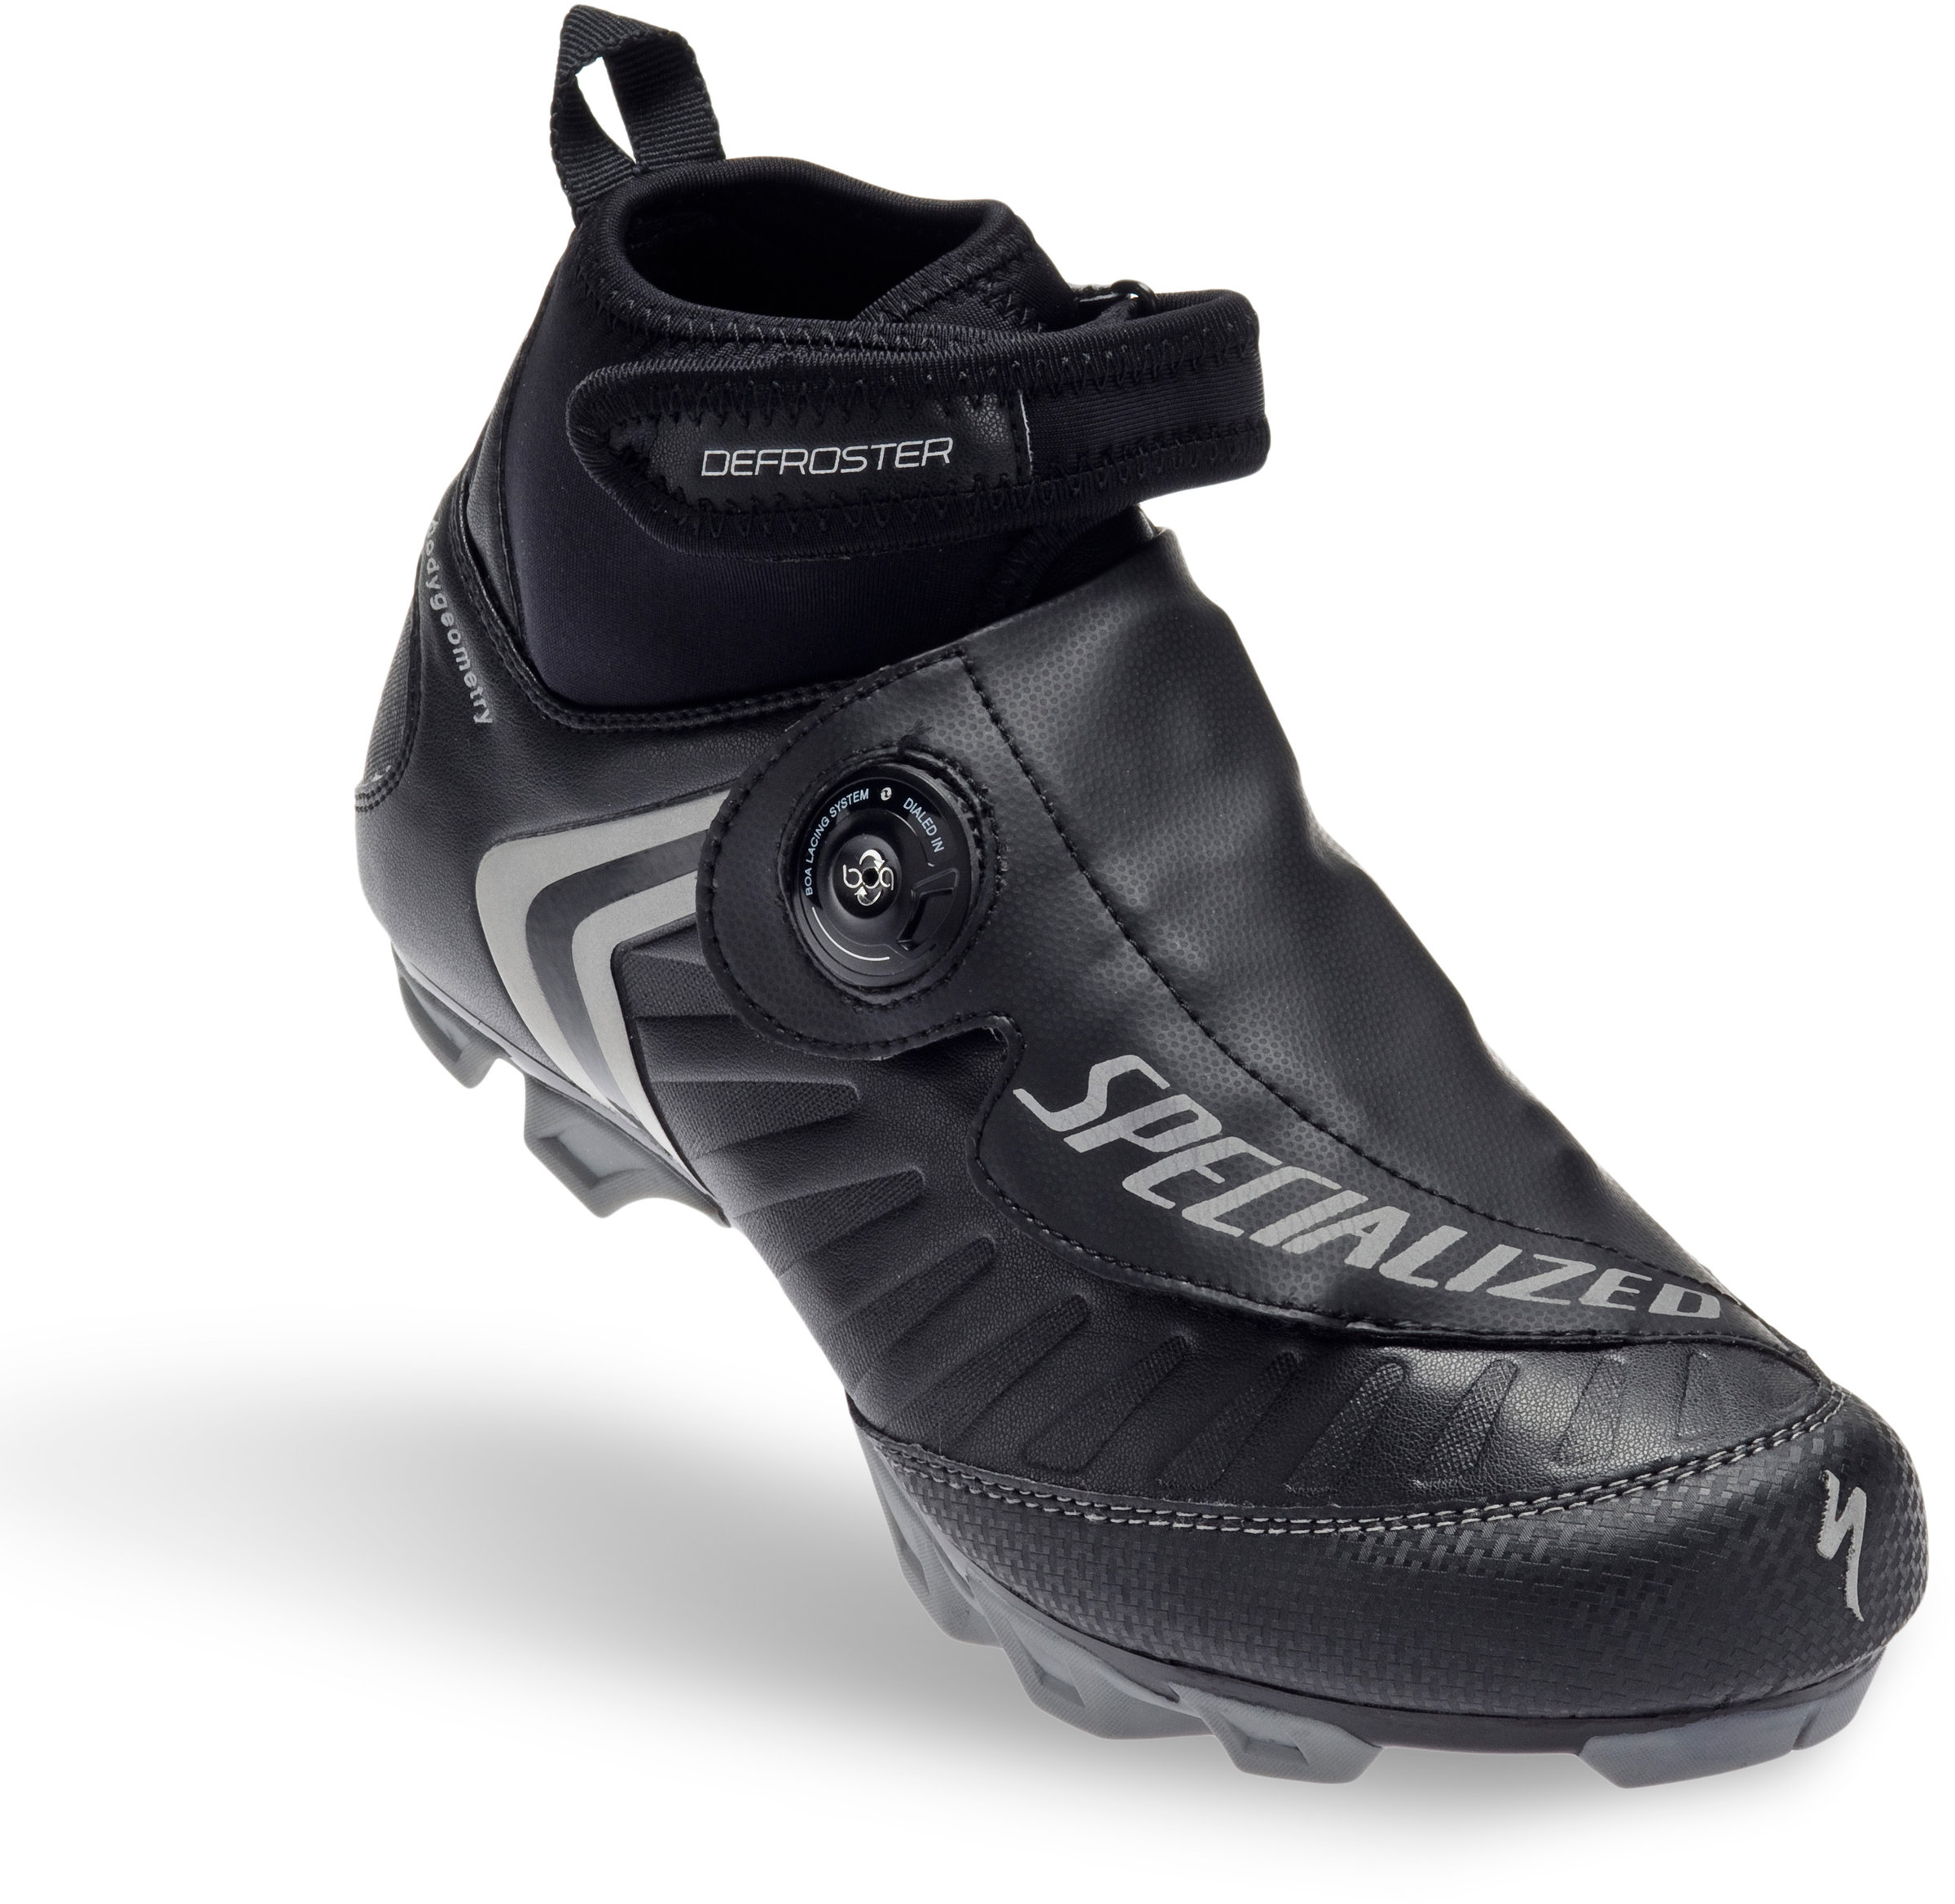 Defroster MTB Shoes